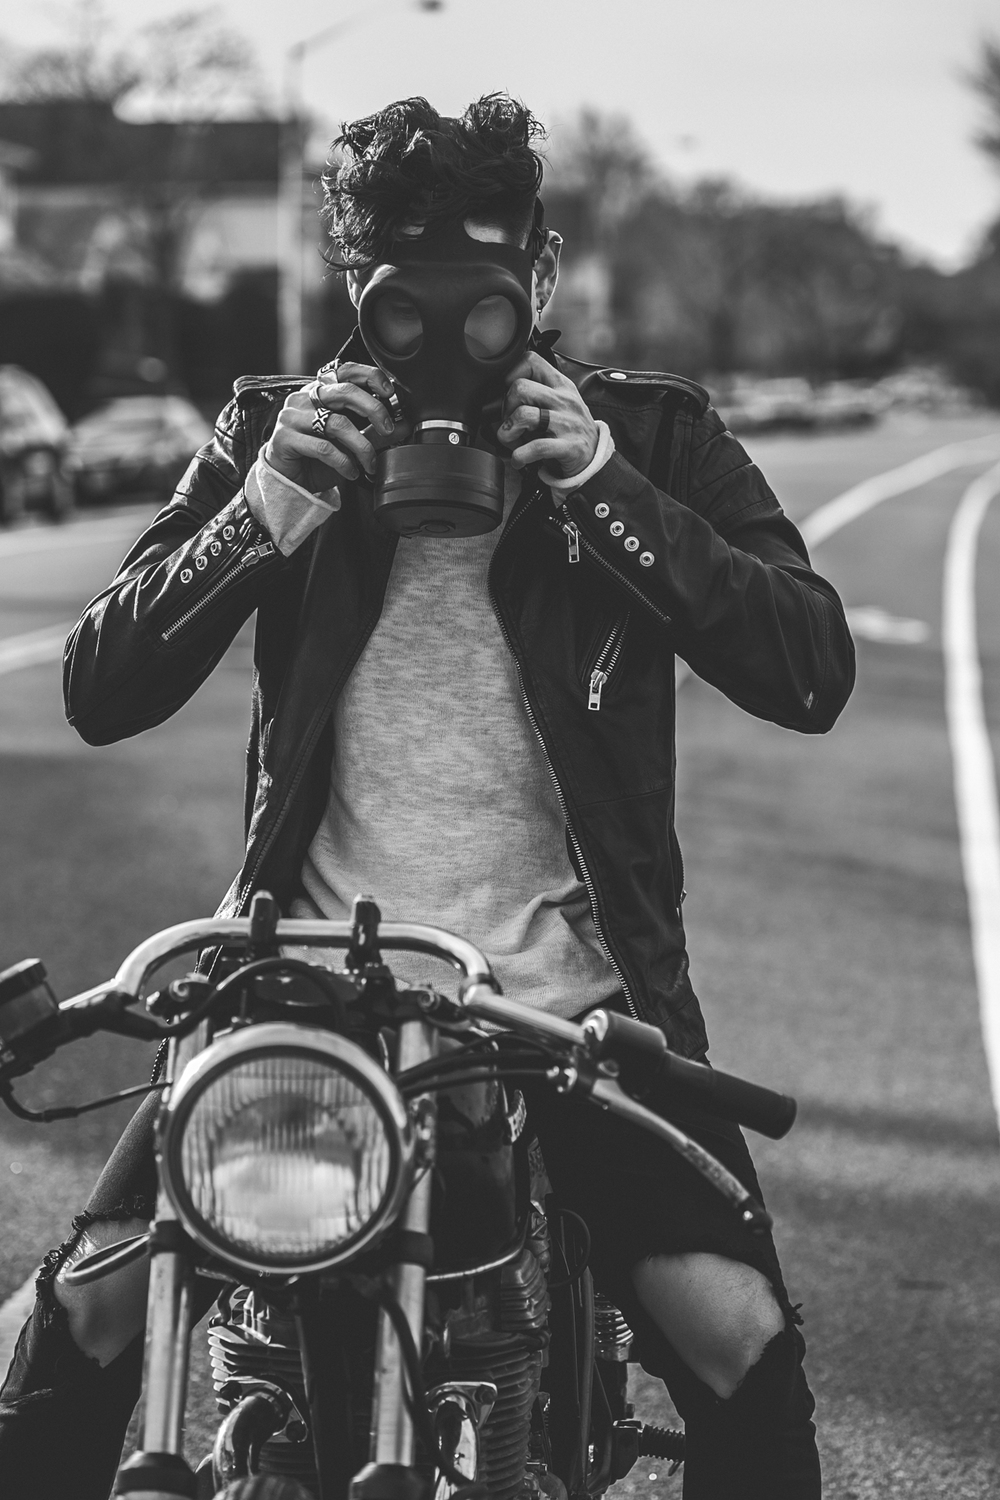 tattoos-motorcycles-caferacers